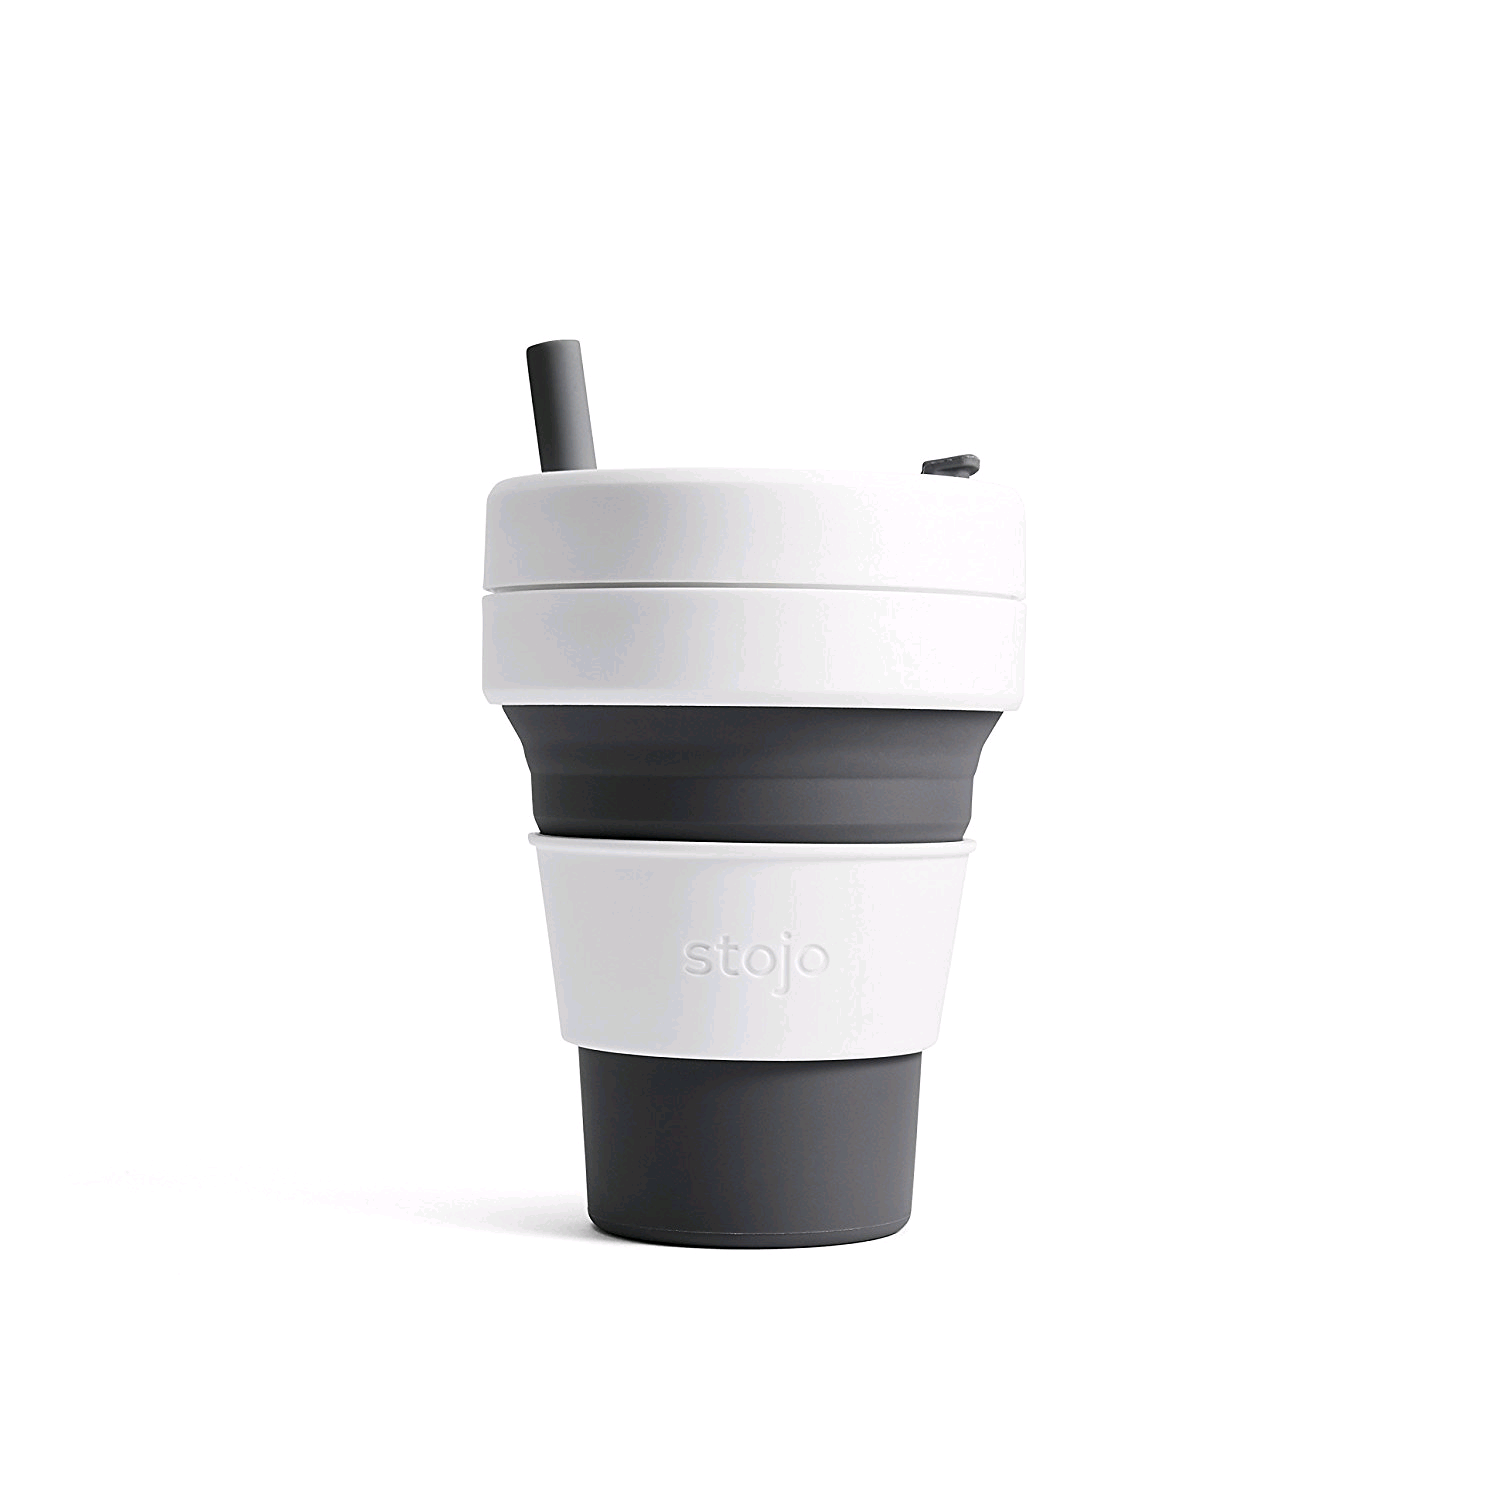 STOJO S2-SLT Silicone Collapsible Coffee Cup 16oz Slate